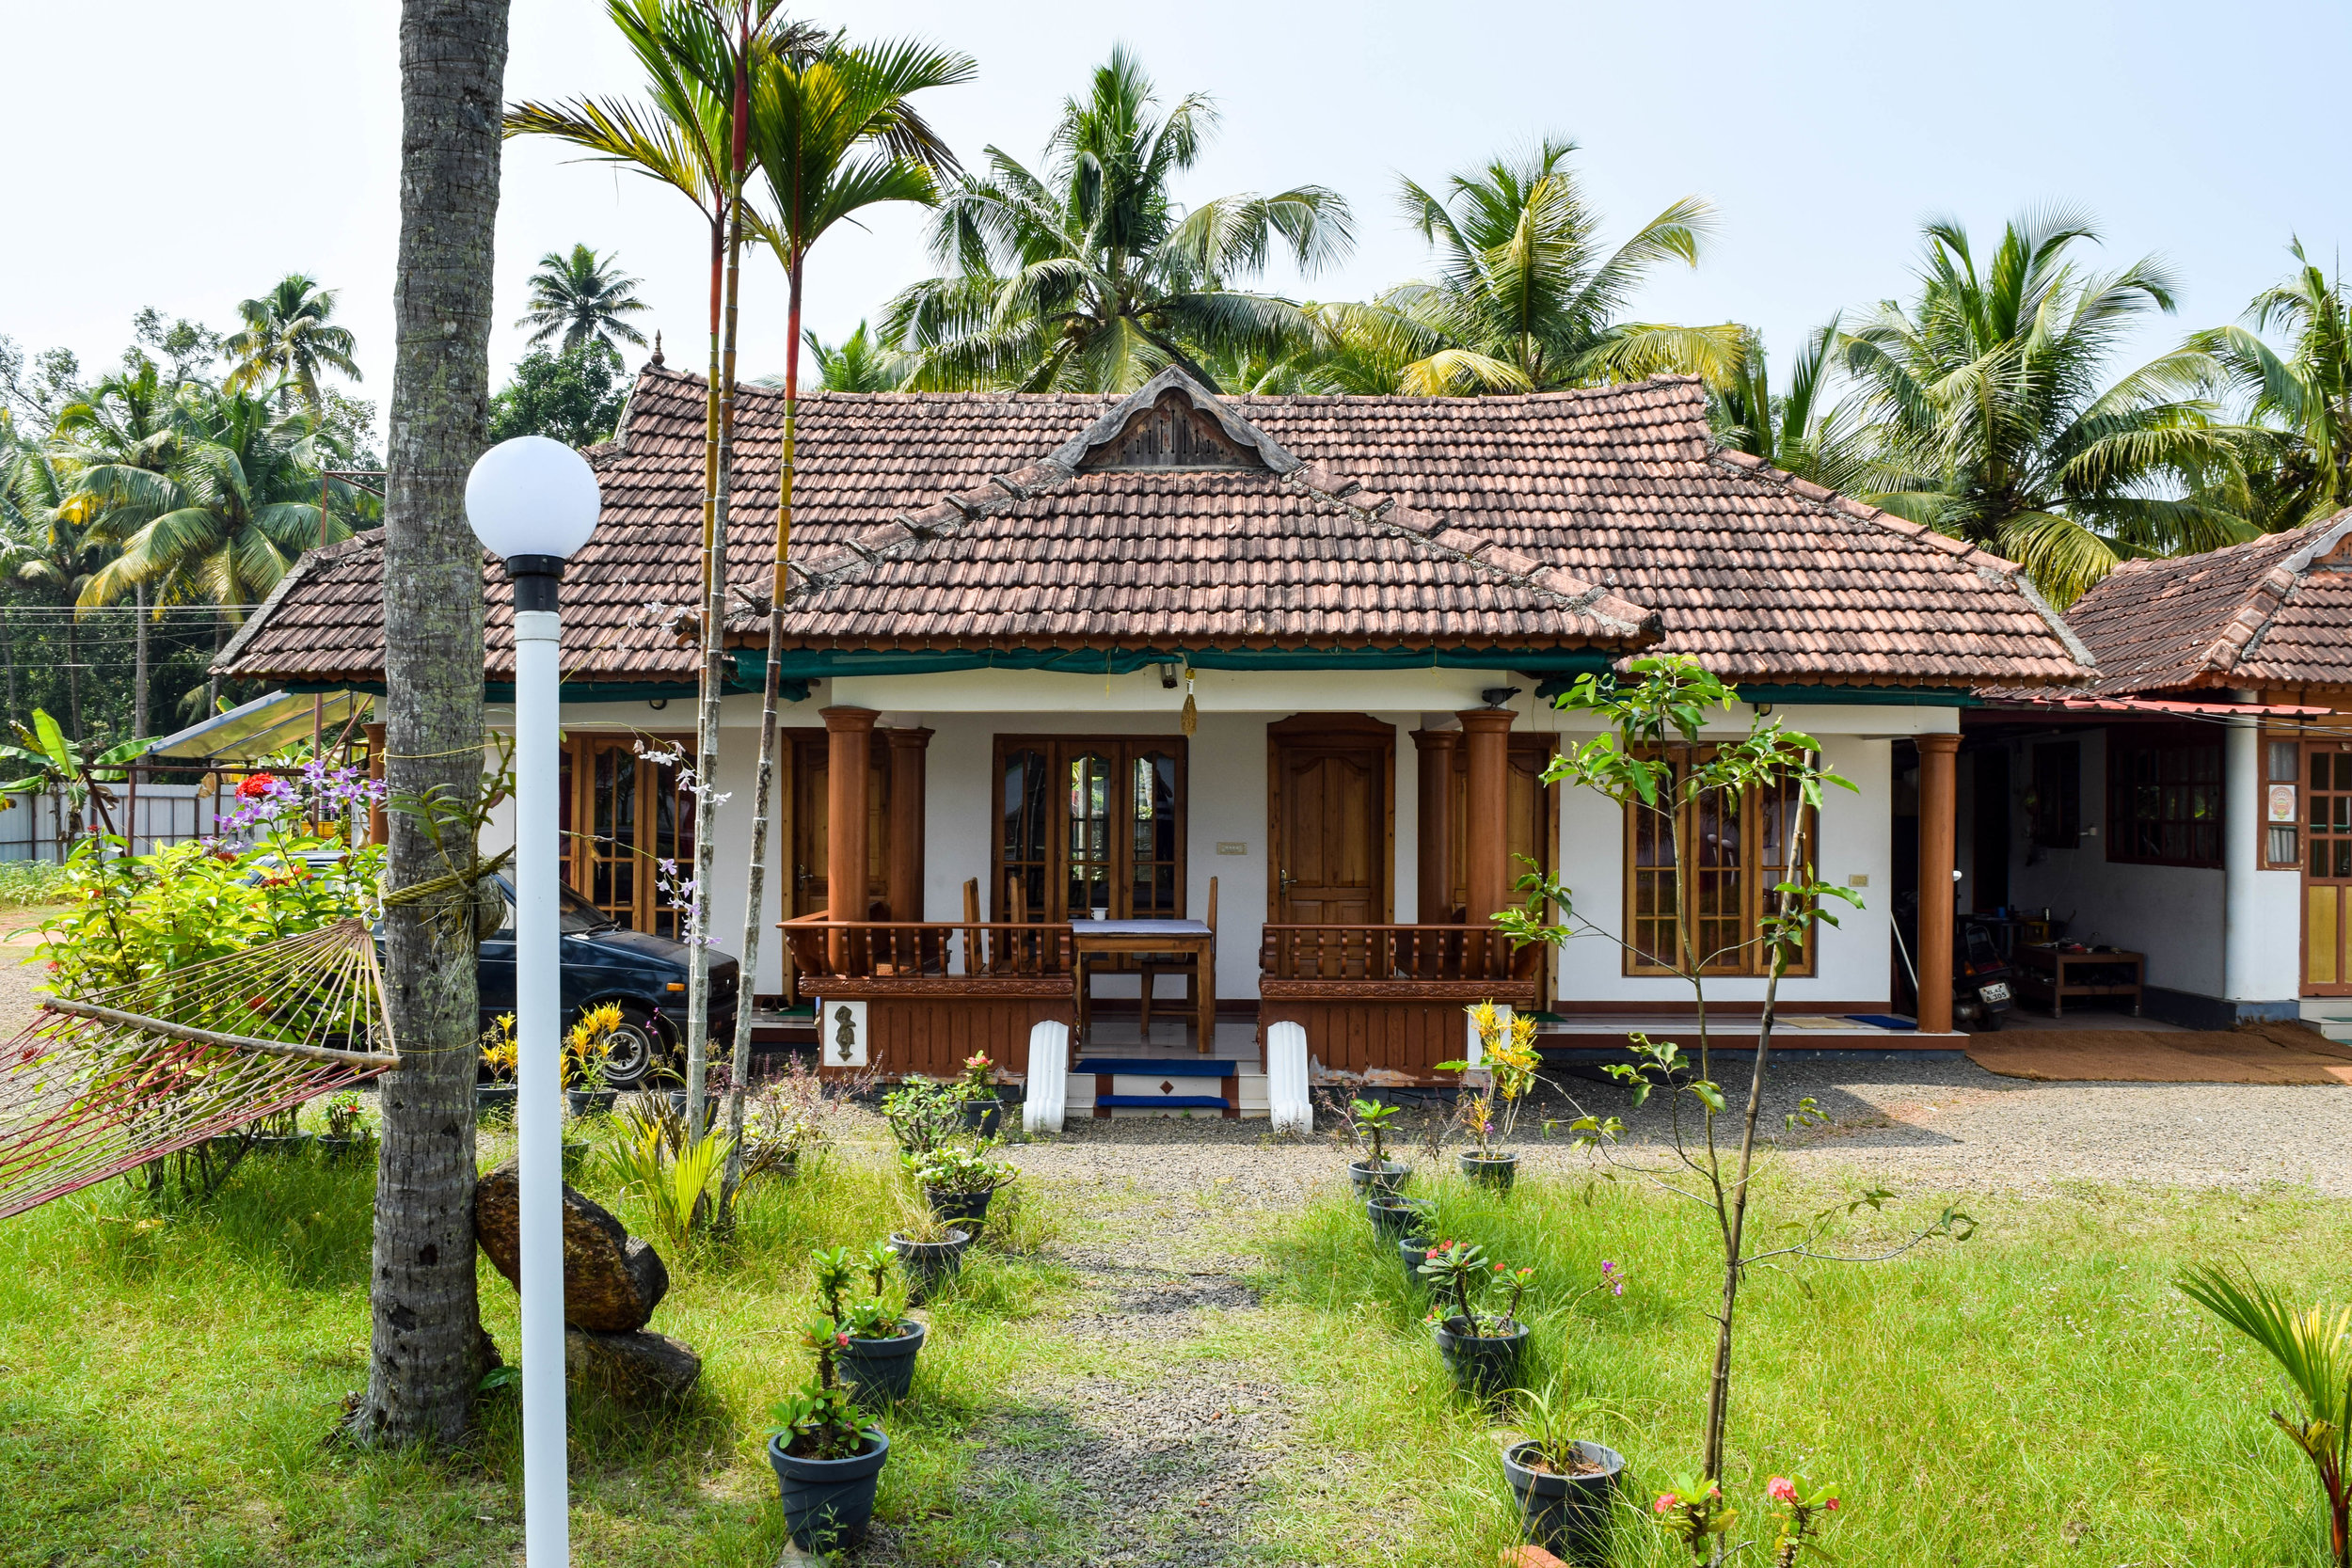 The main building of our guesthouse. So charming.